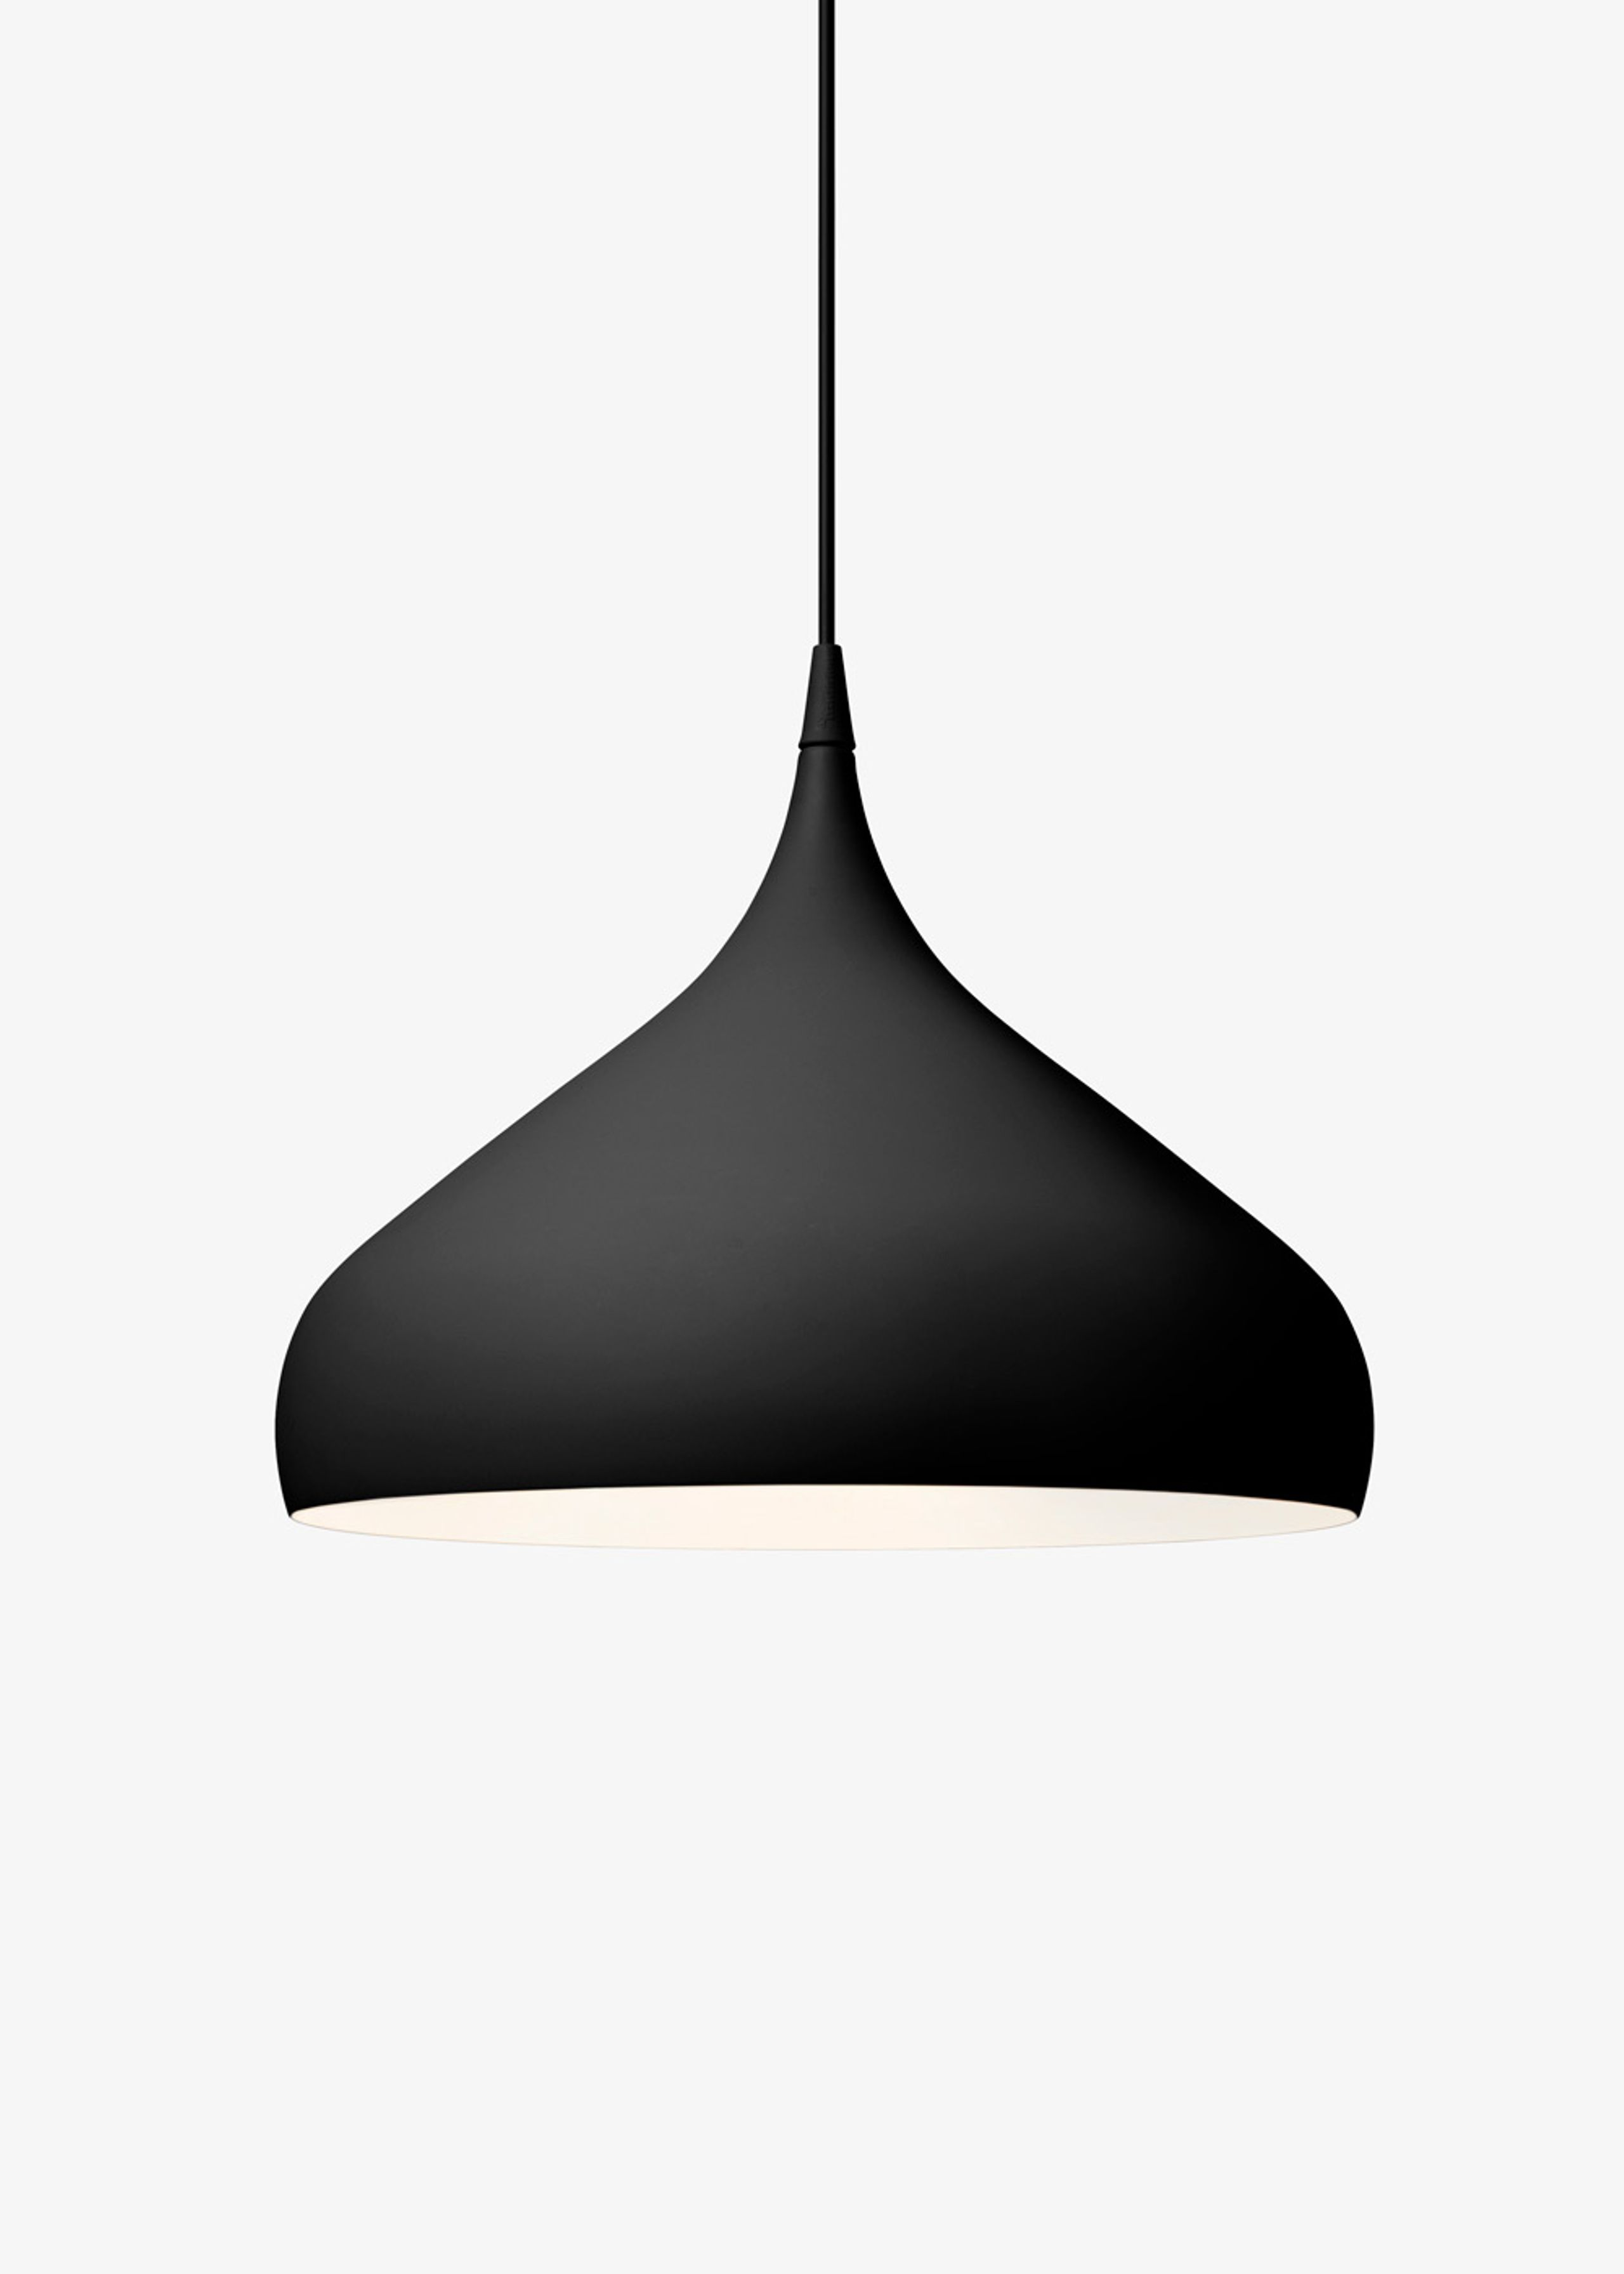 Spinning pendant lamp lamp tradition tradition lamp spinning pendant lamp bh2 matt black mozeypictures Gallery